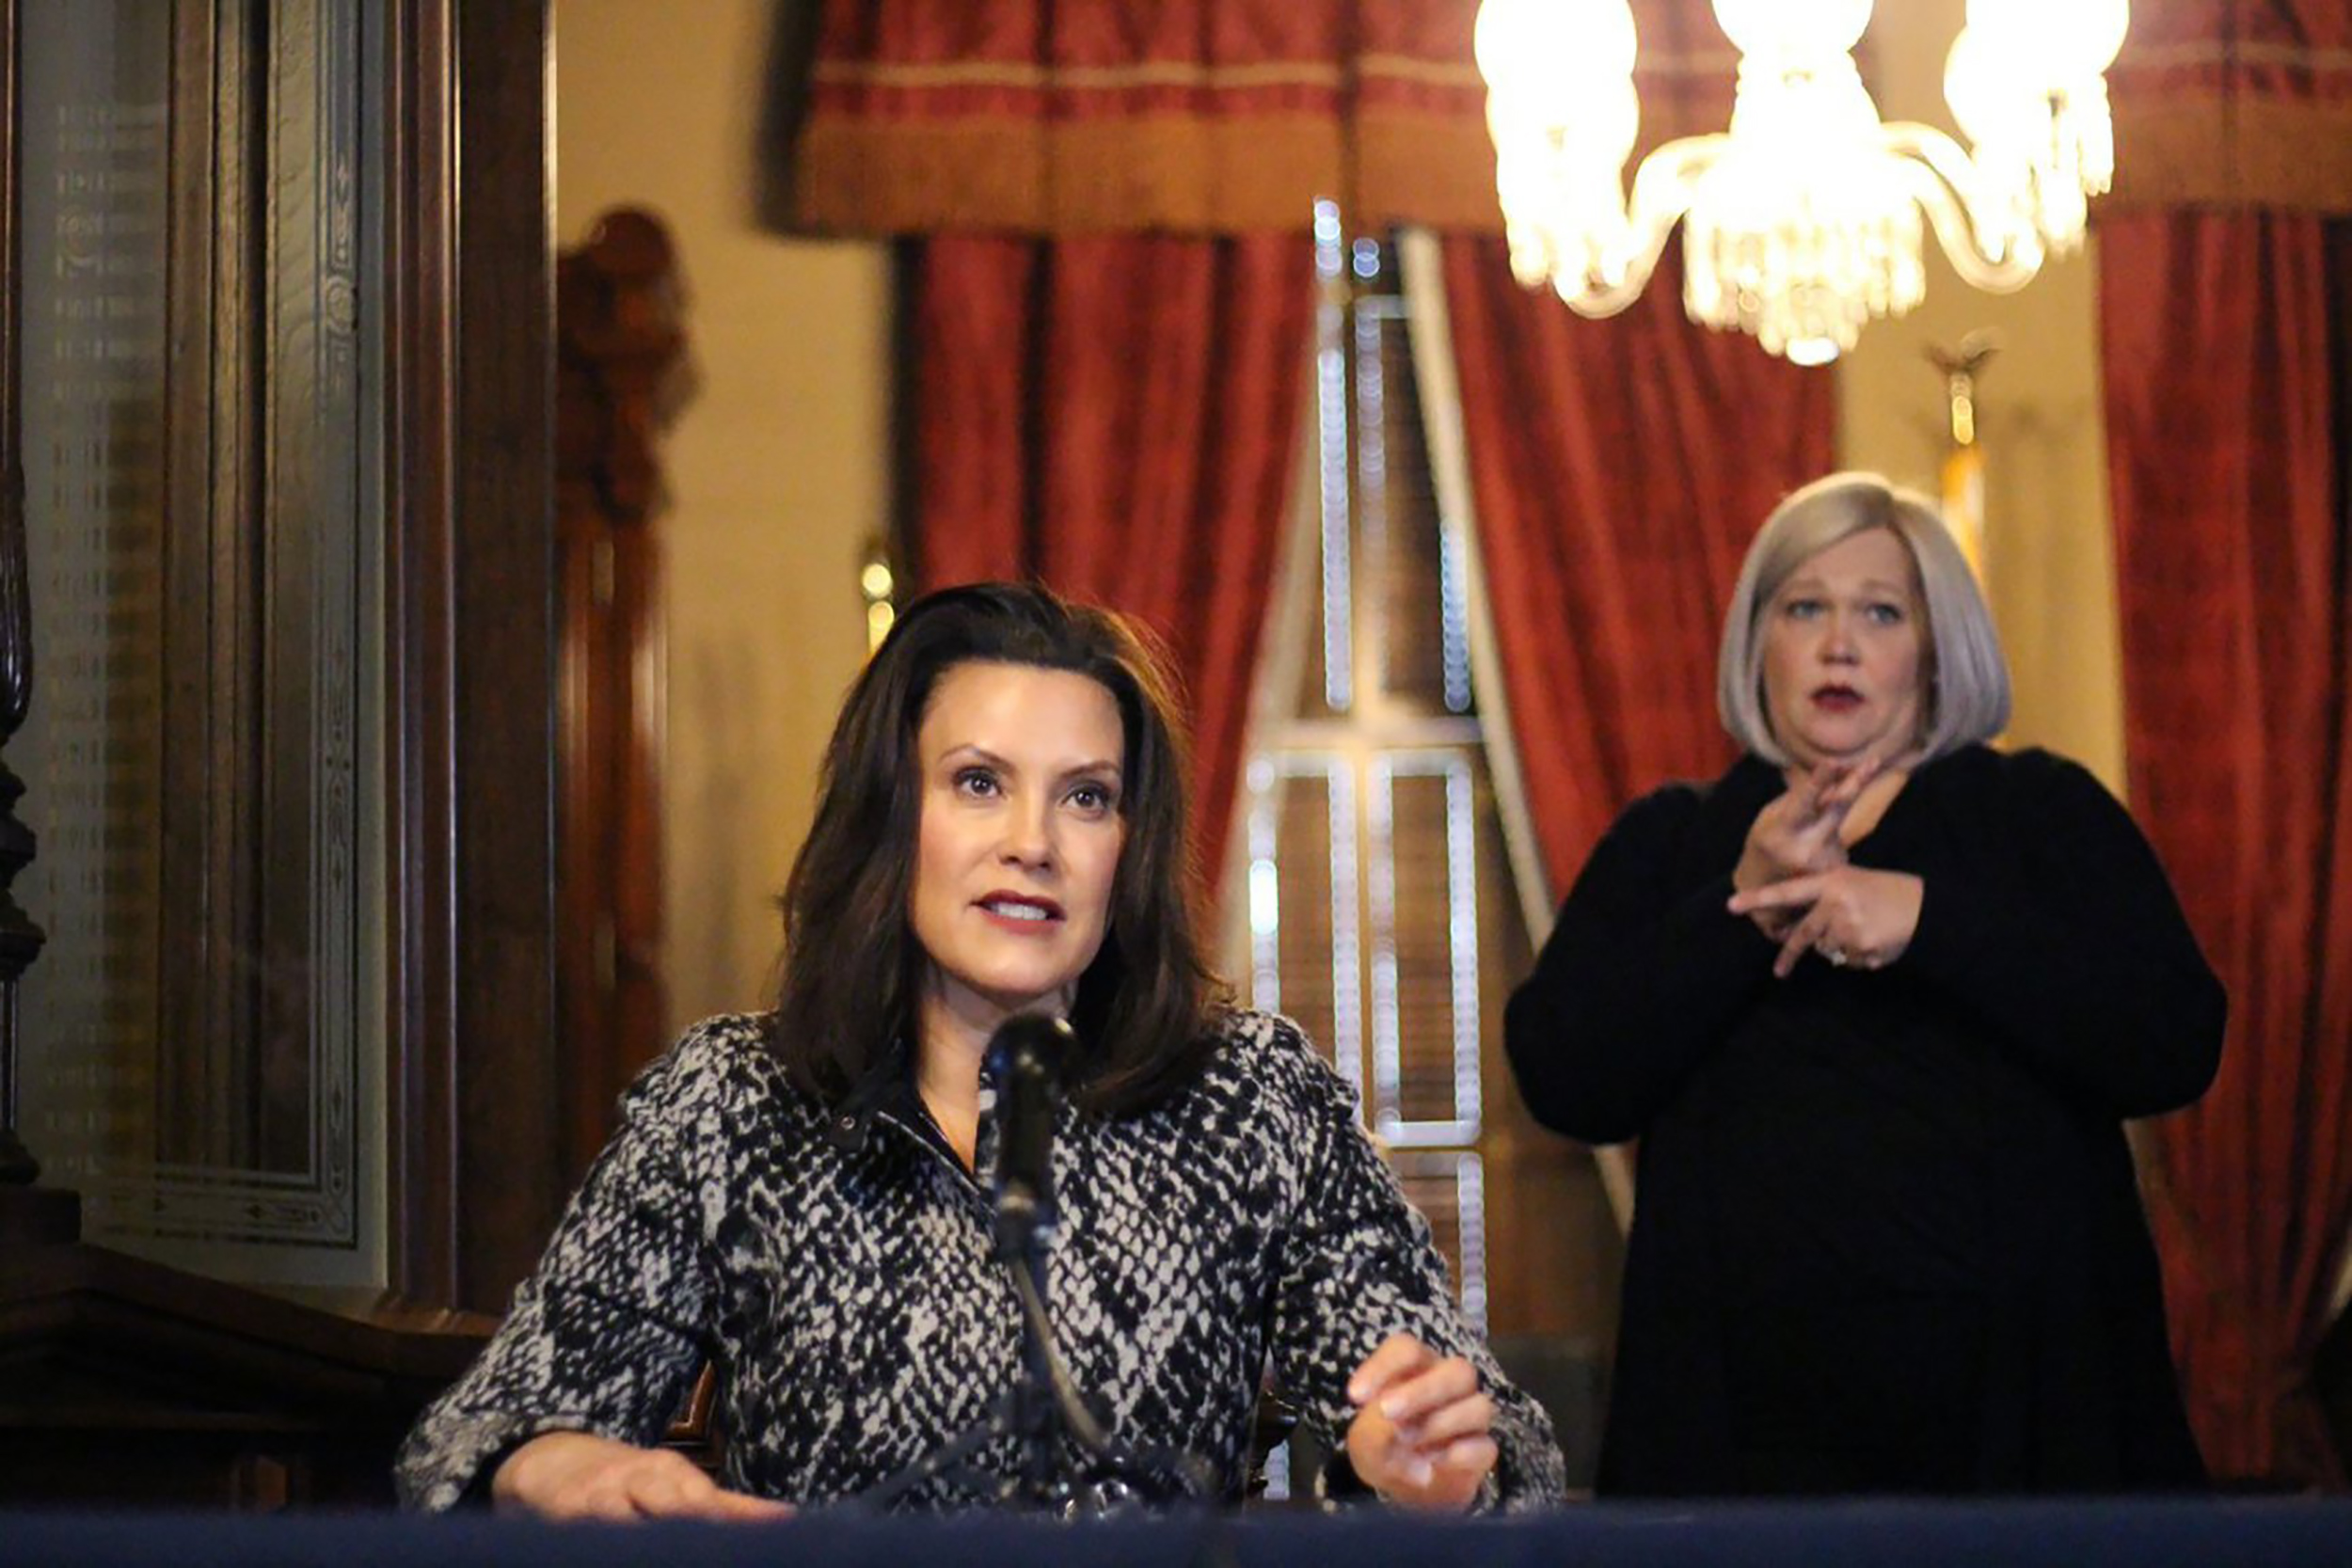 Michigan Gov. Whitmer faces fierce backlash over strict stay-at ...